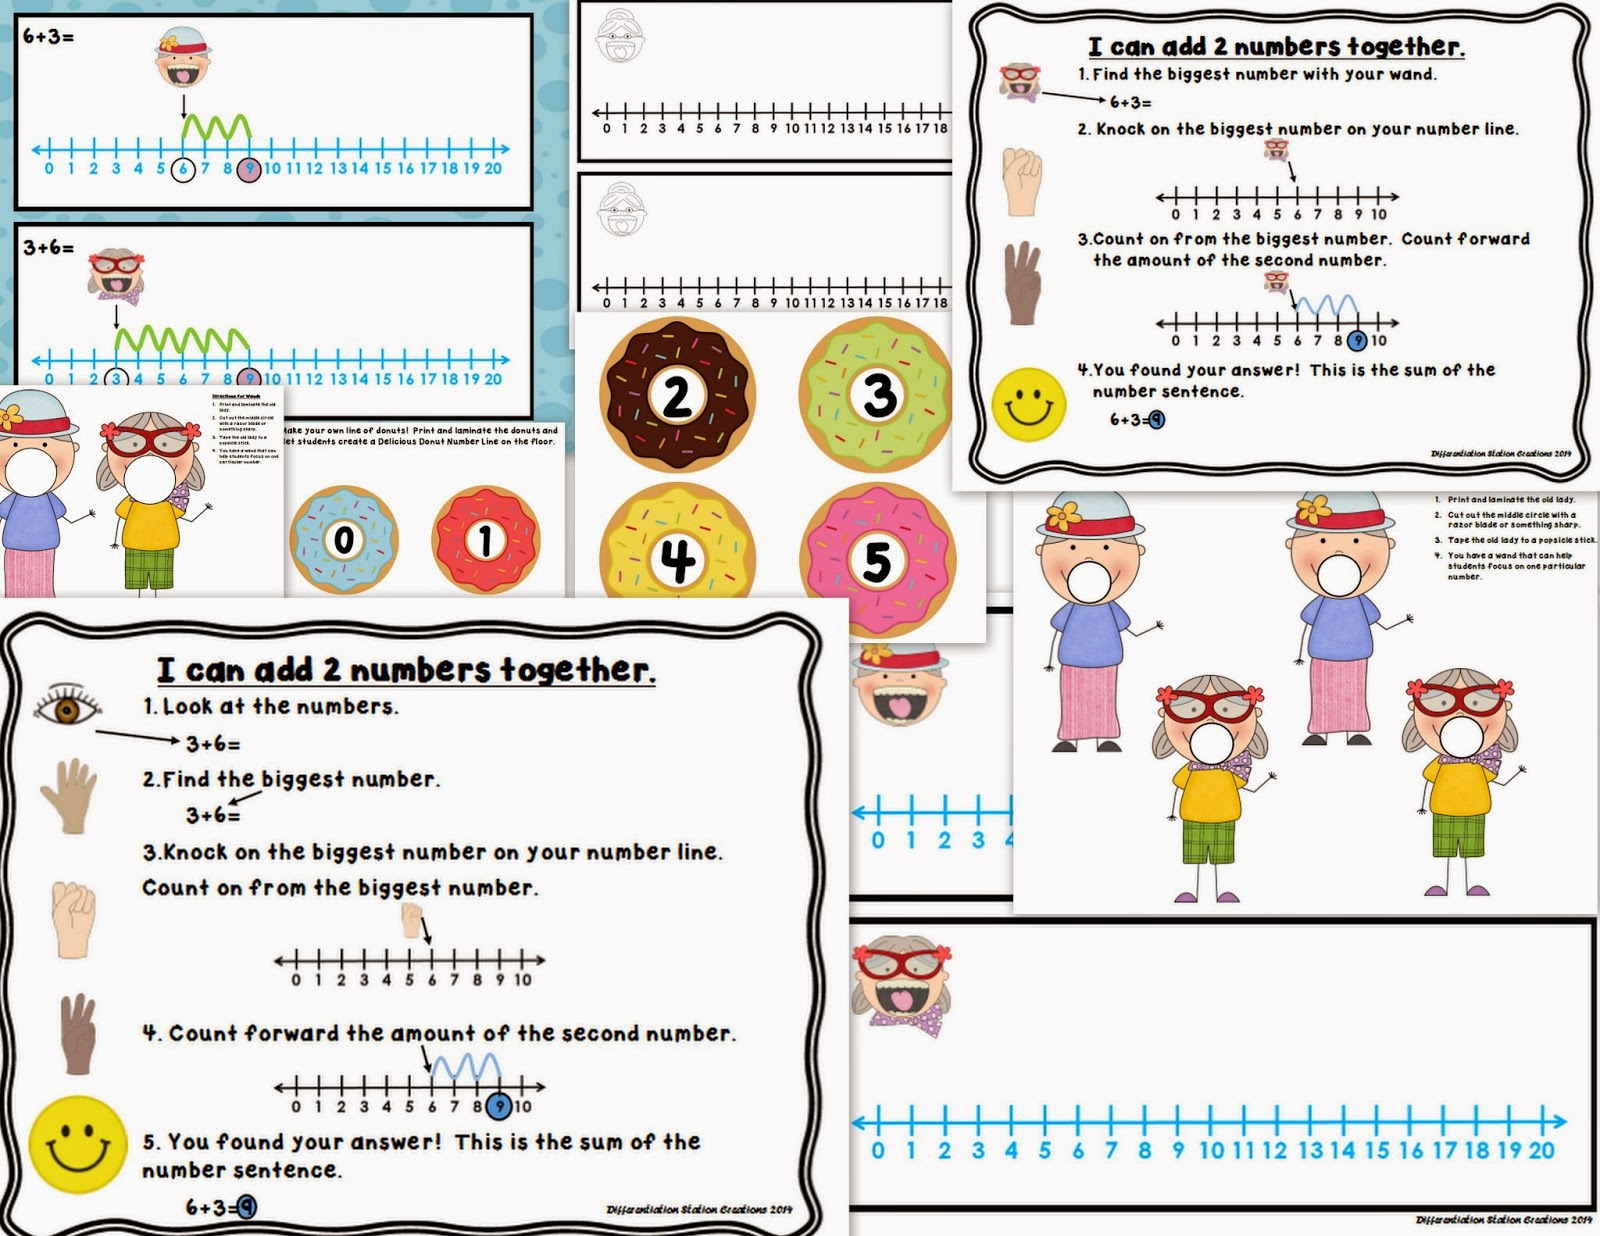 http://www.teacherspayteachers.com/Product/Delicious-Donuts-Addition-to-20-Number-Lines-Missing-Addends-Printables-1154026